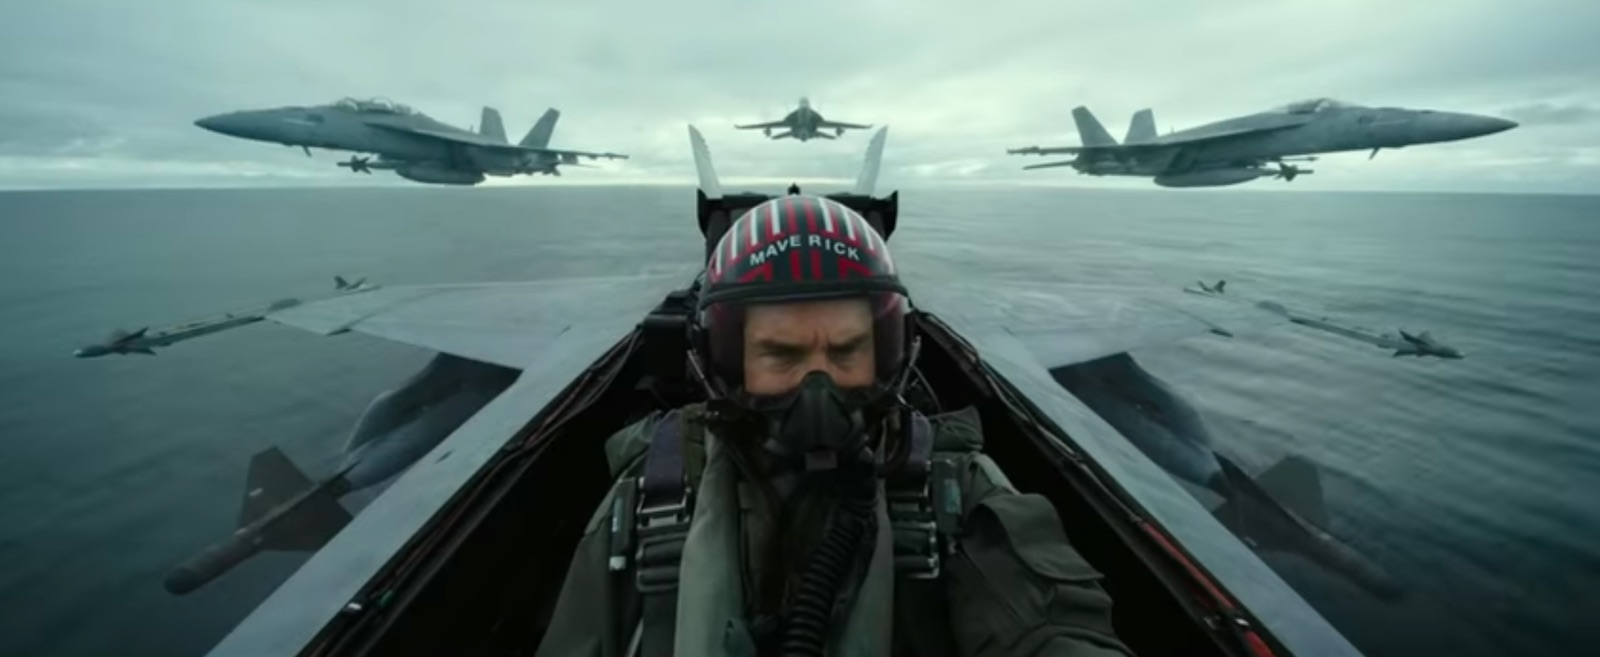 Top Gun: Maverick is the perfect stand-in for the US-led rules-based international order (Photo: Paramount Pictures/YouTube)